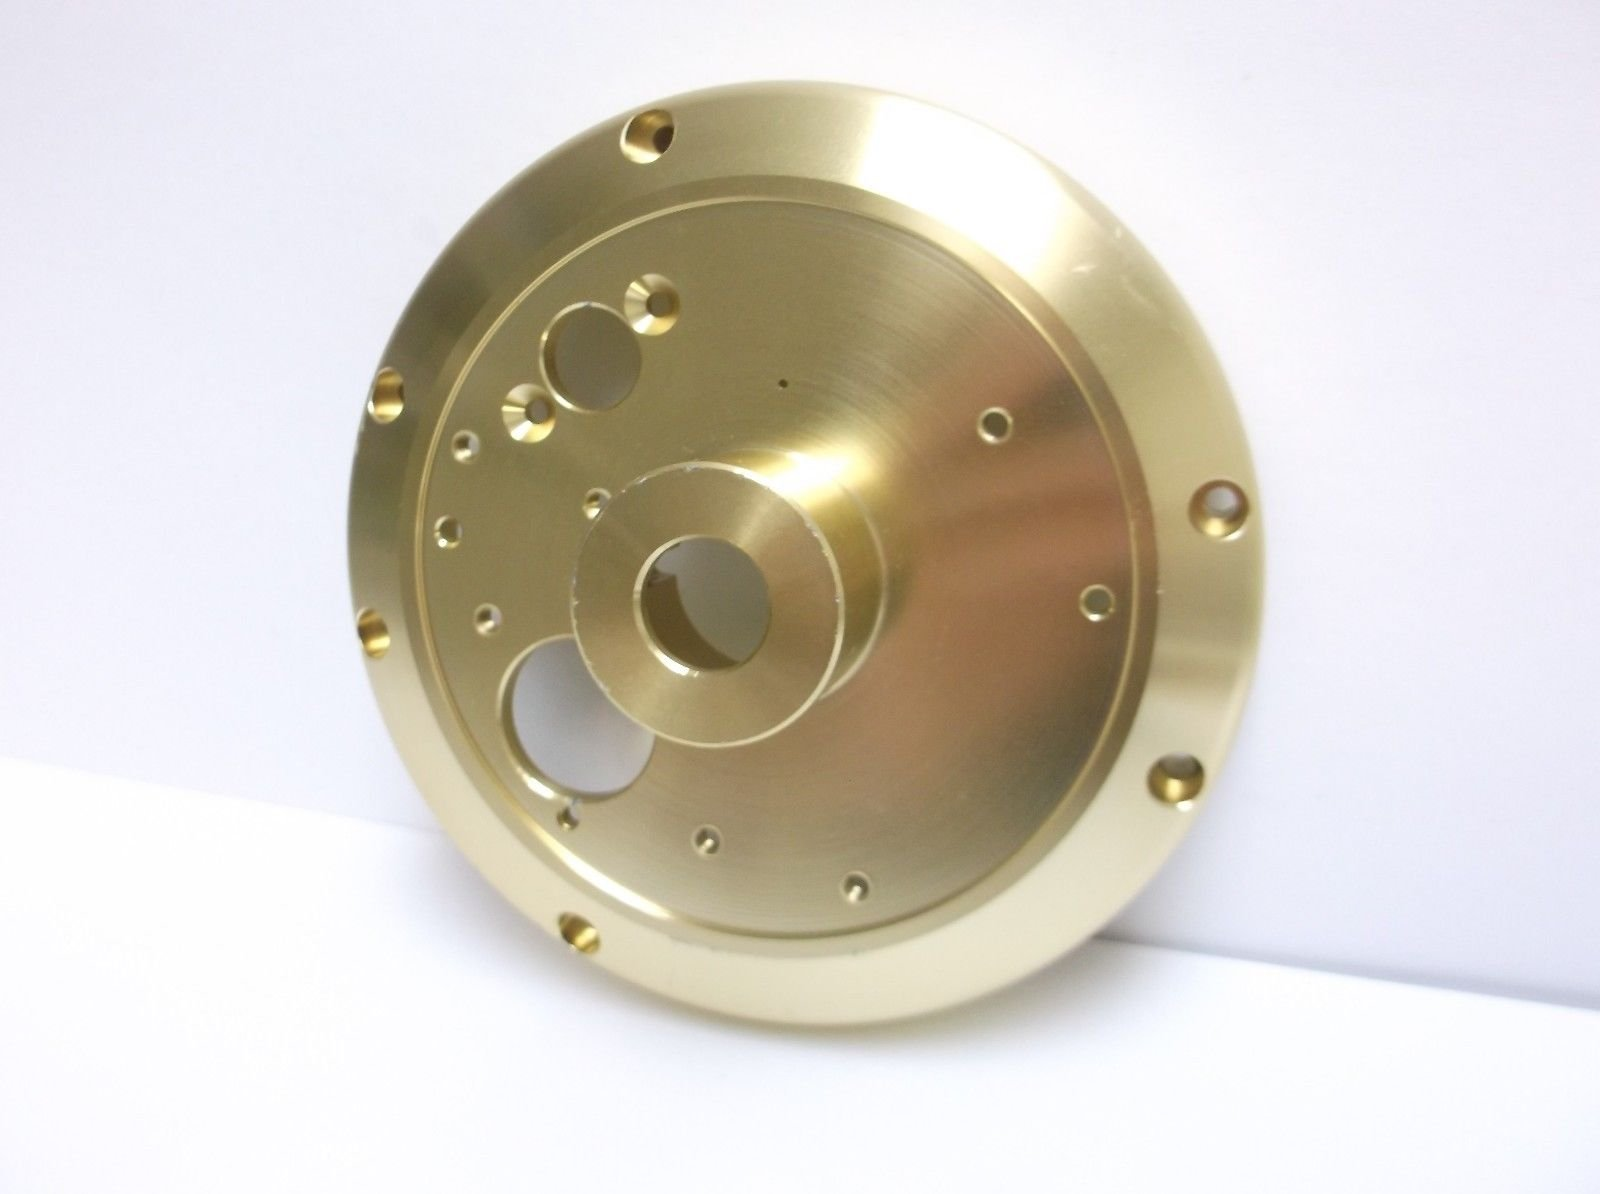 SHIMANO BIG GAME REEL PART TT0265 Tiagra 50 50W 50WLRS - Right Side Plate (A) #C